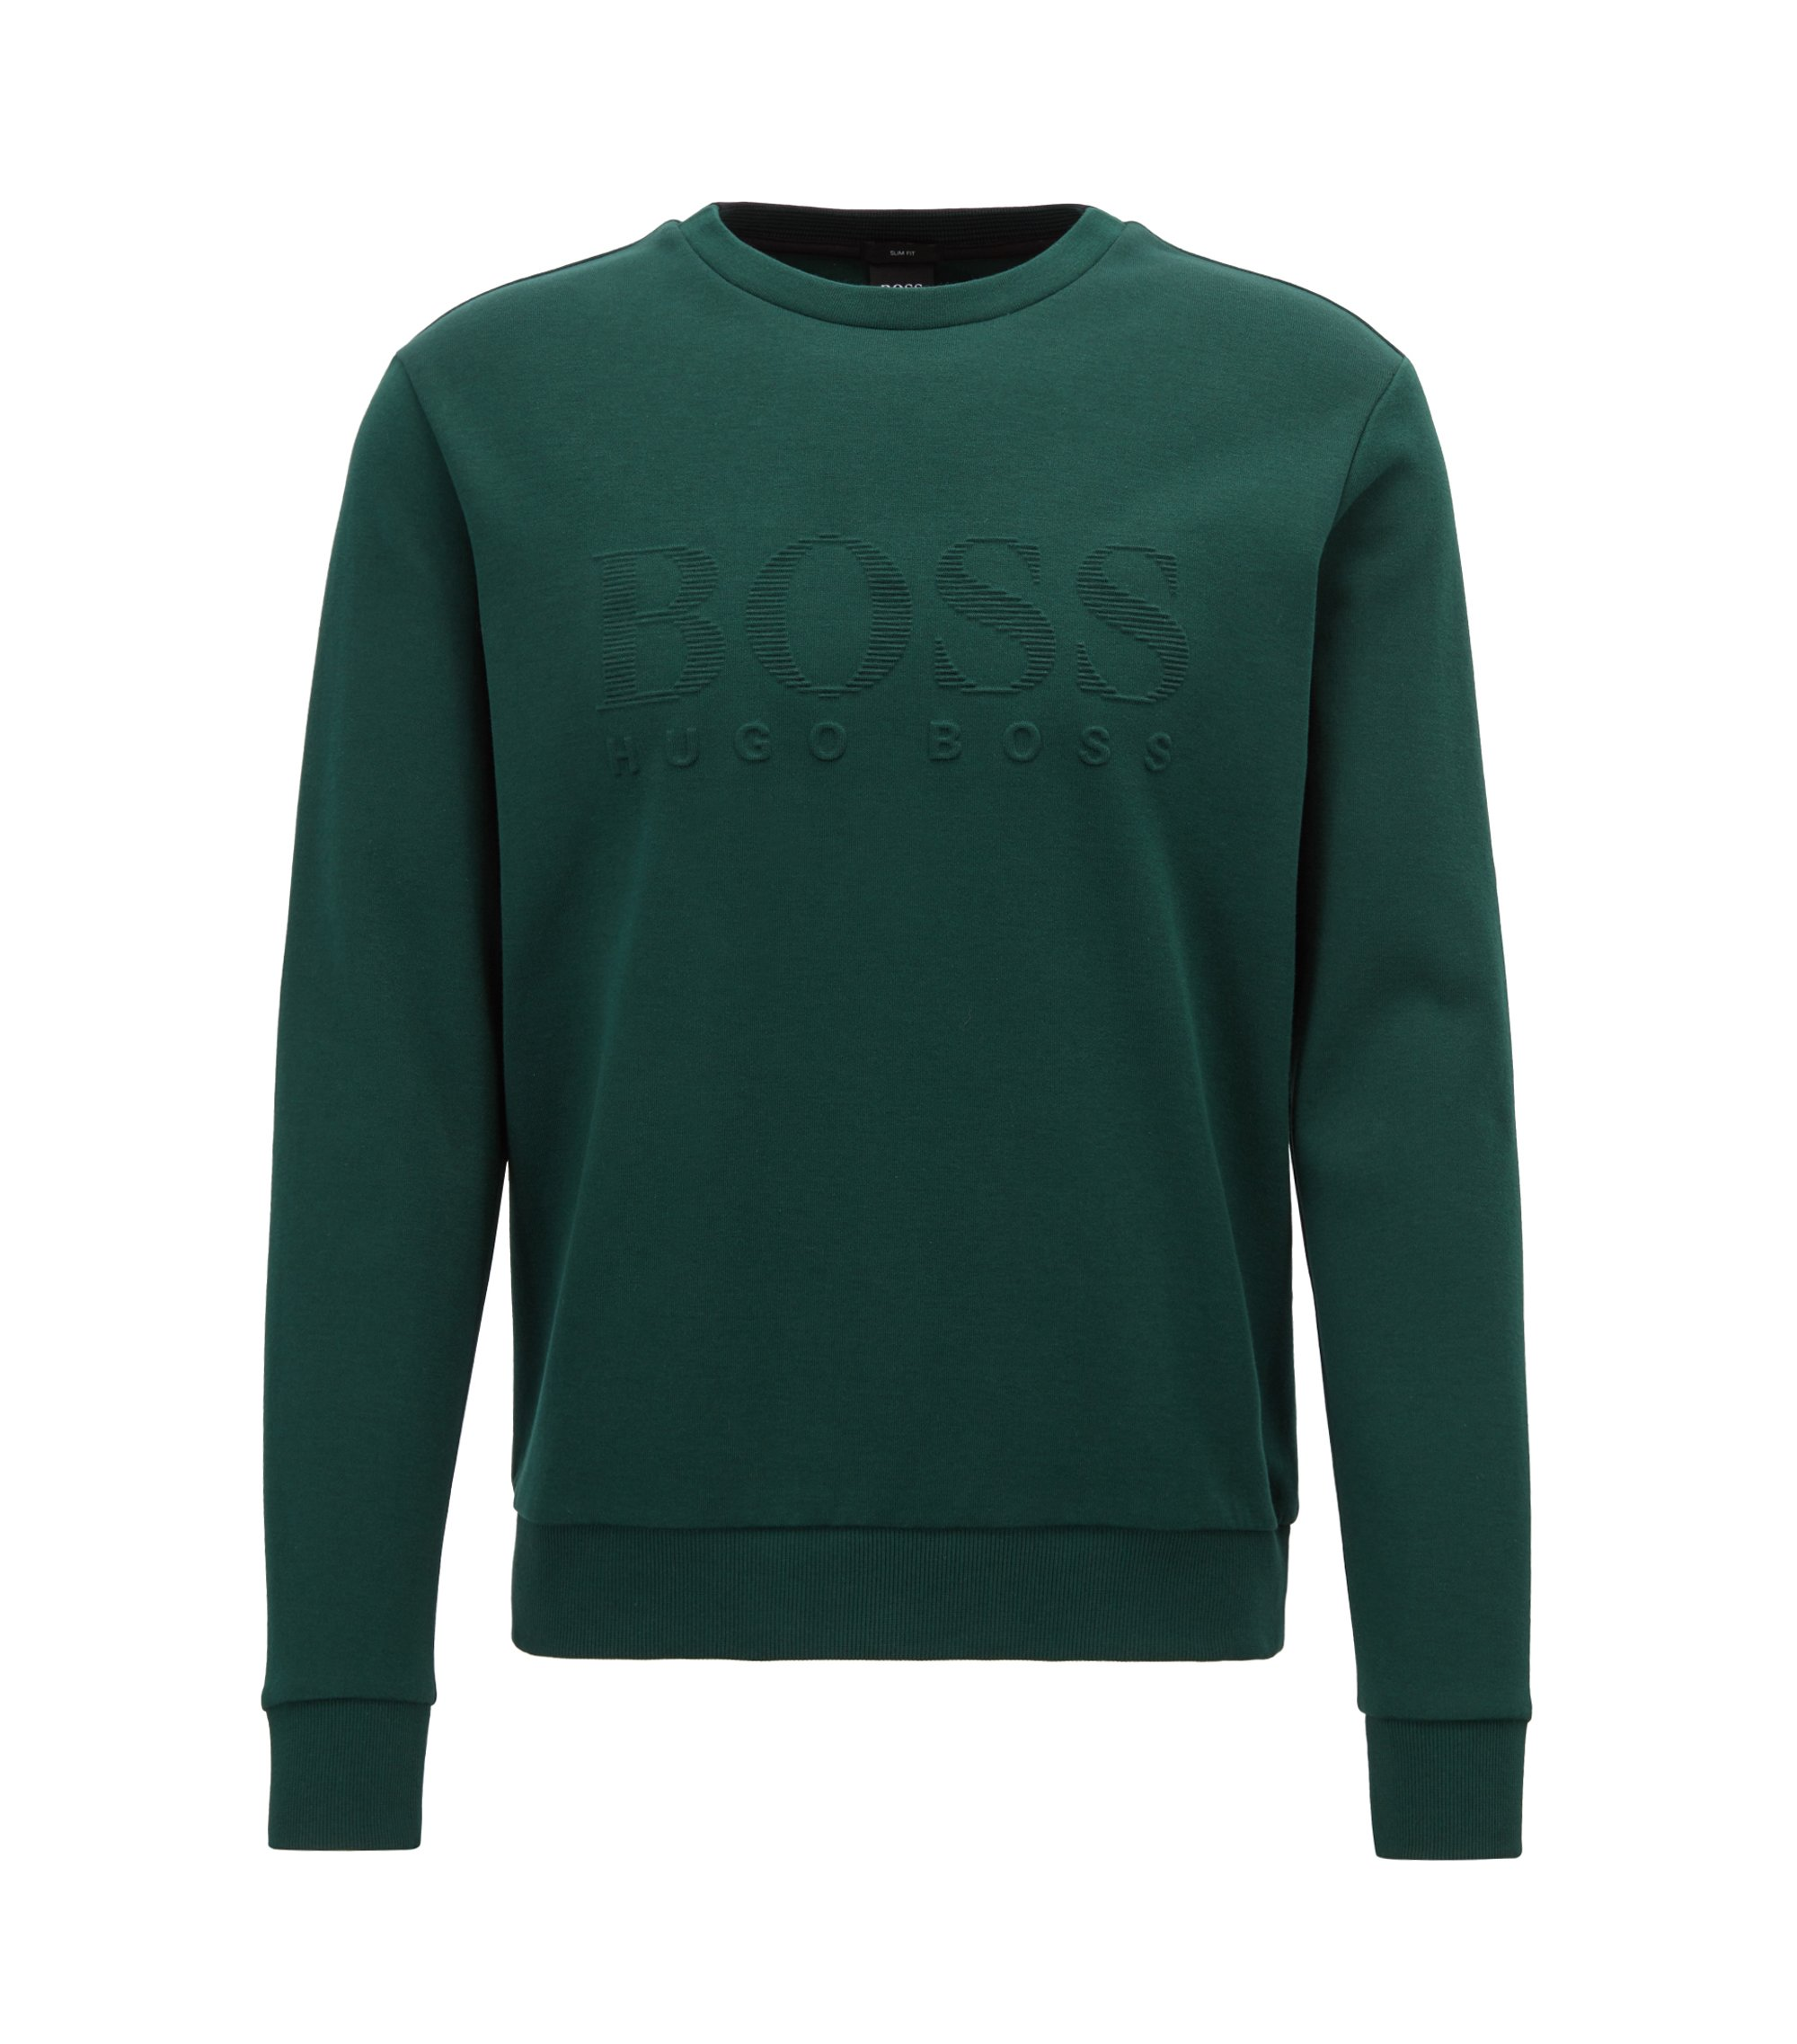 Slim-fit sweatshirt with tonal embossed logo, Grün